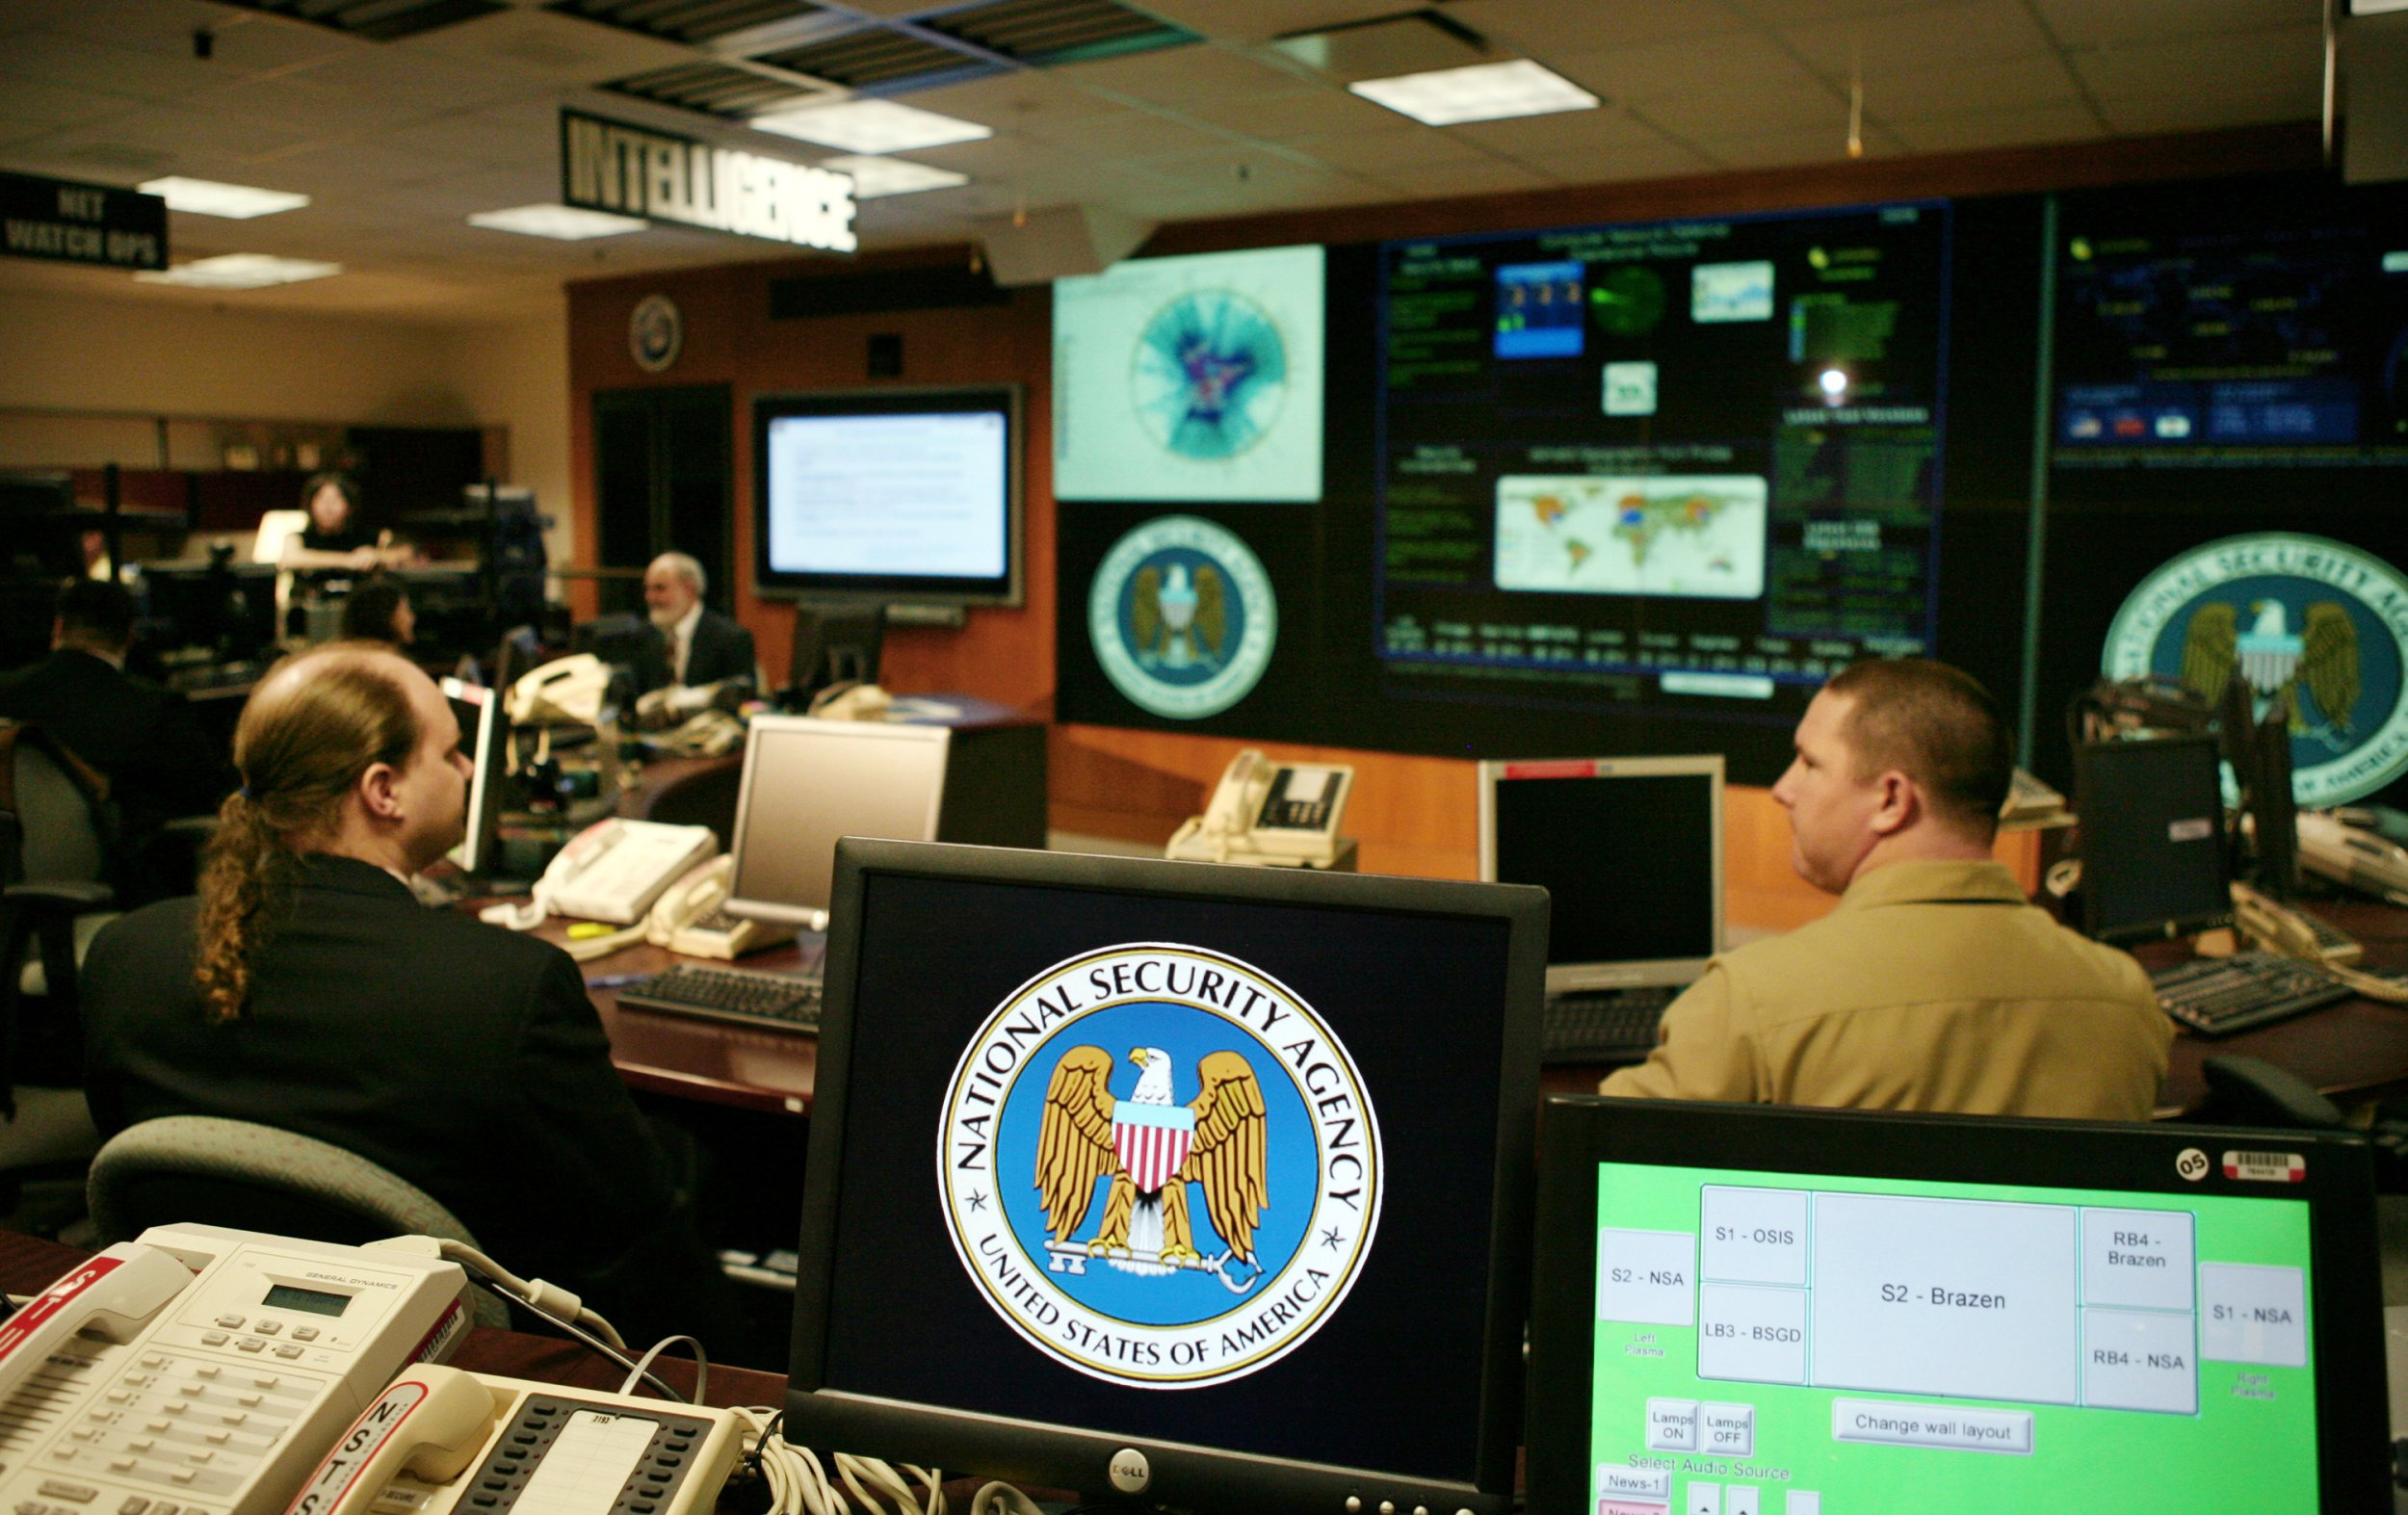 NSA to Destroy Data Collected From Mass Phone Surveillance